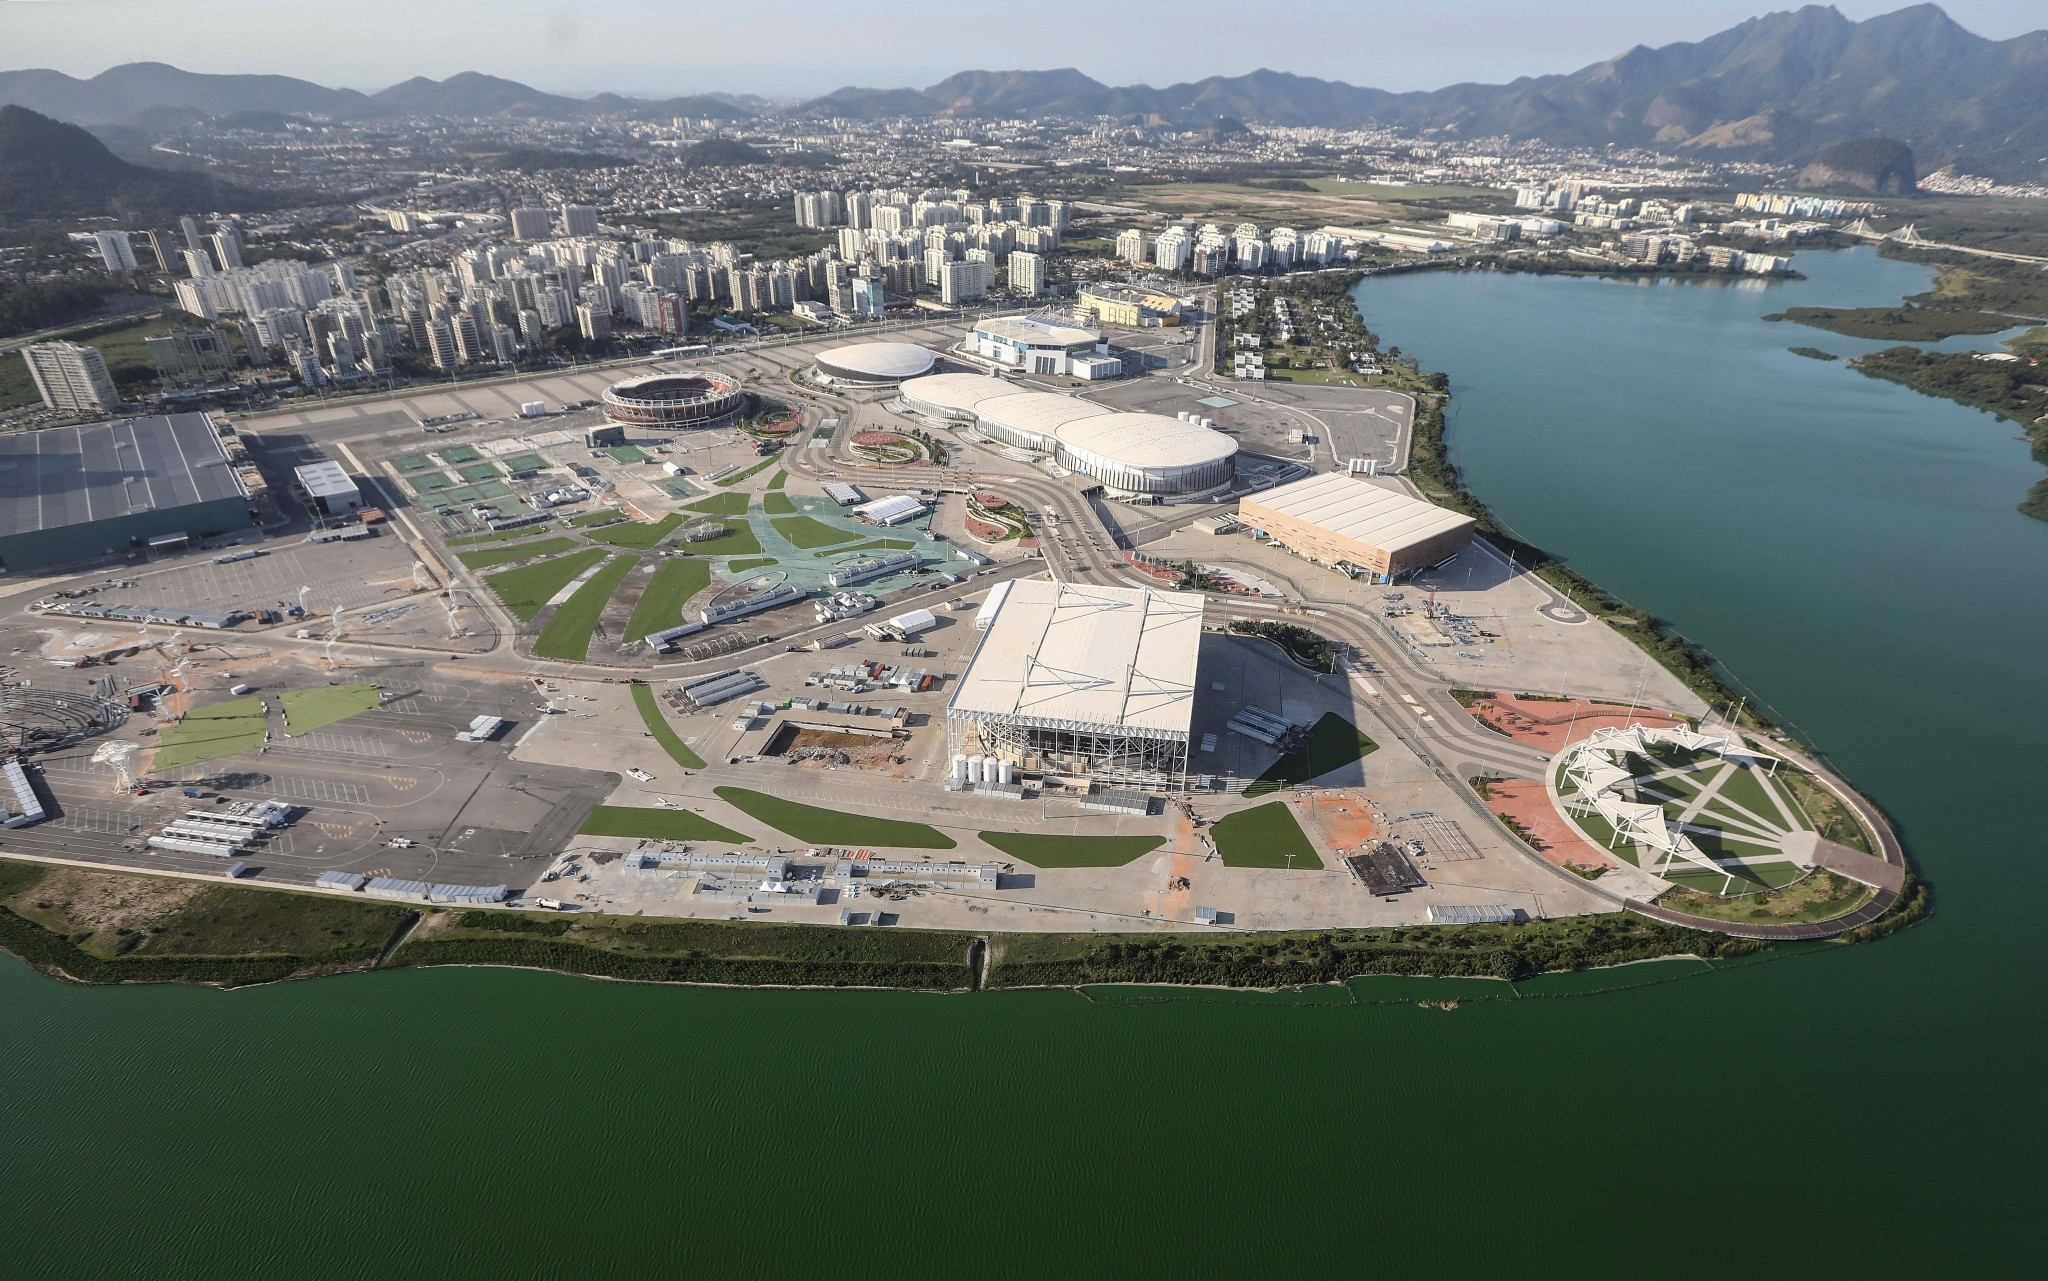 The Olympic Park in Barra de Tijuca one year on from the Olympic Games ©Getty Images